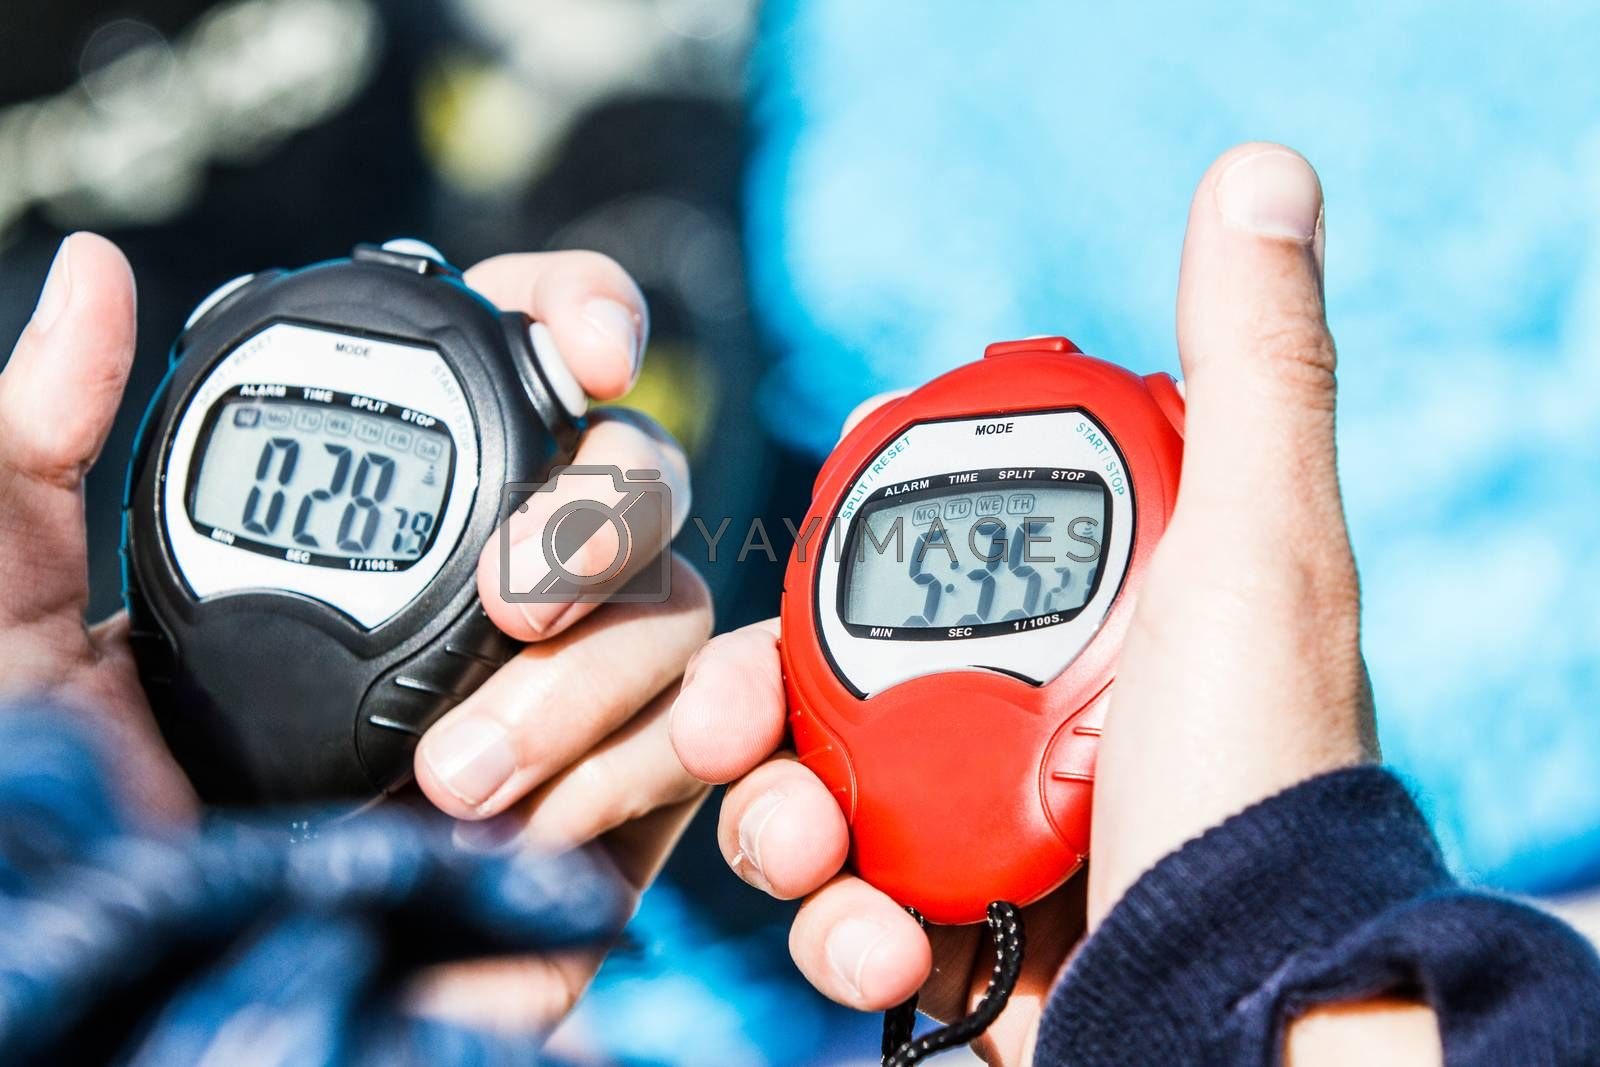 Official Chrono of a Freediving AIDA Performance (on the right) and of the resting period of 30 seconds before the Judge can give the Results